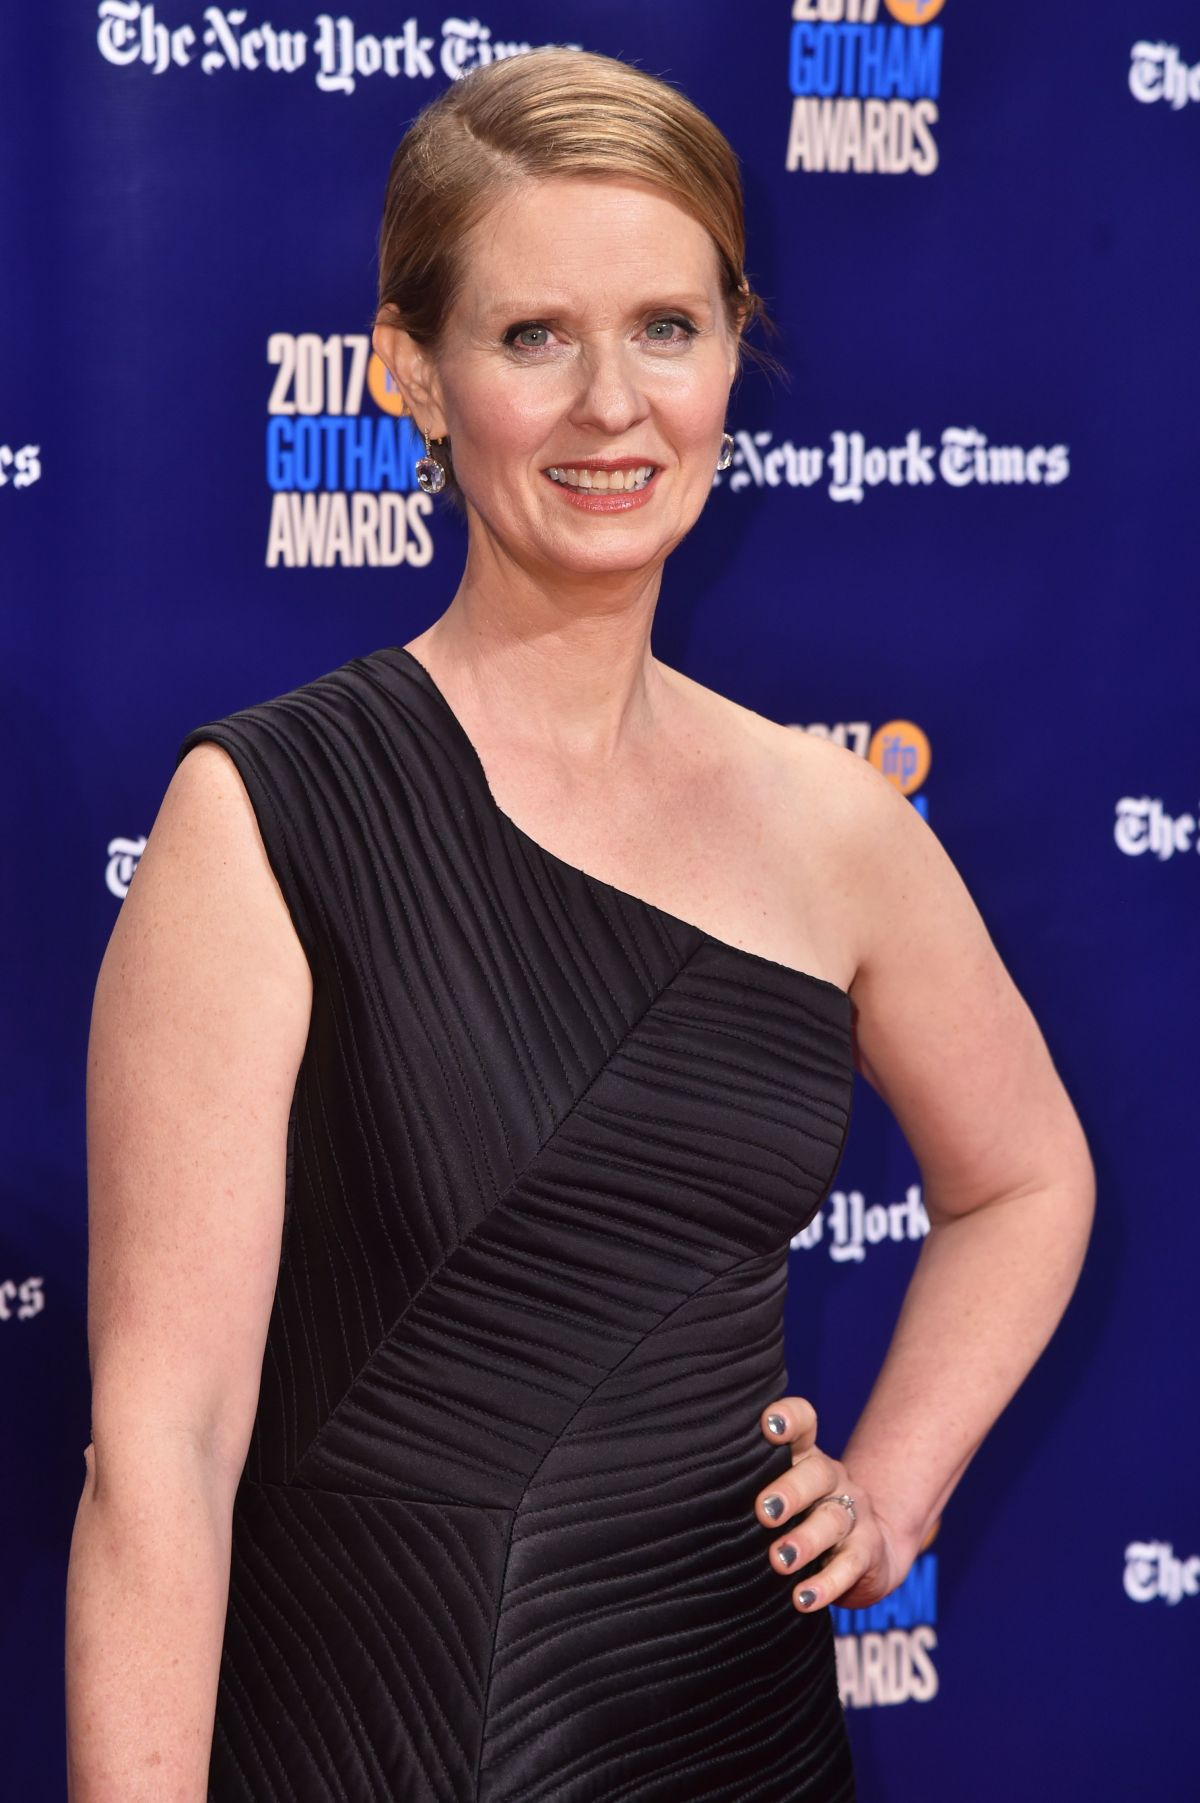 cynthia nixon - photo #25